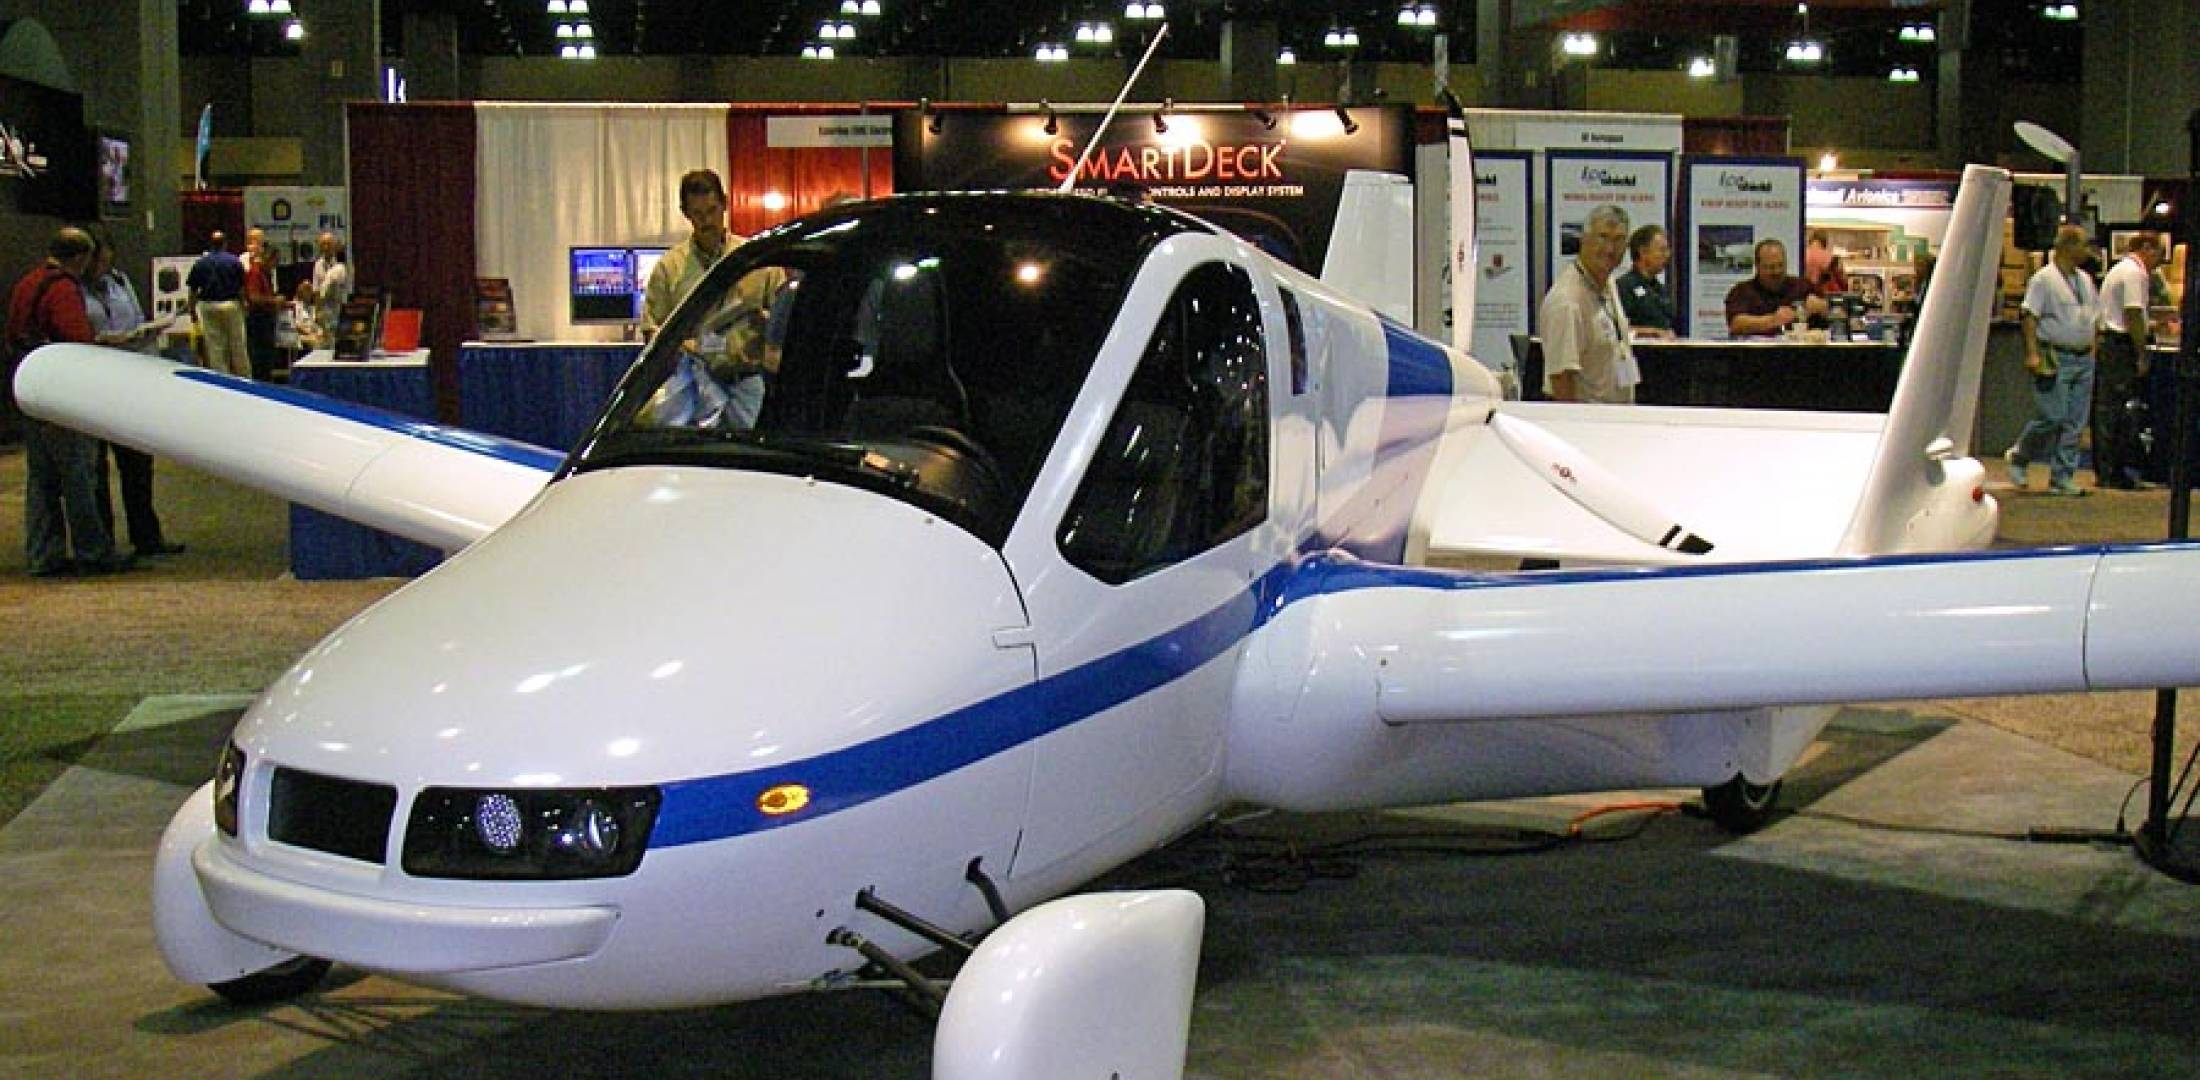 Terrafugia expects to certify its Transition as an LSA and as a car.